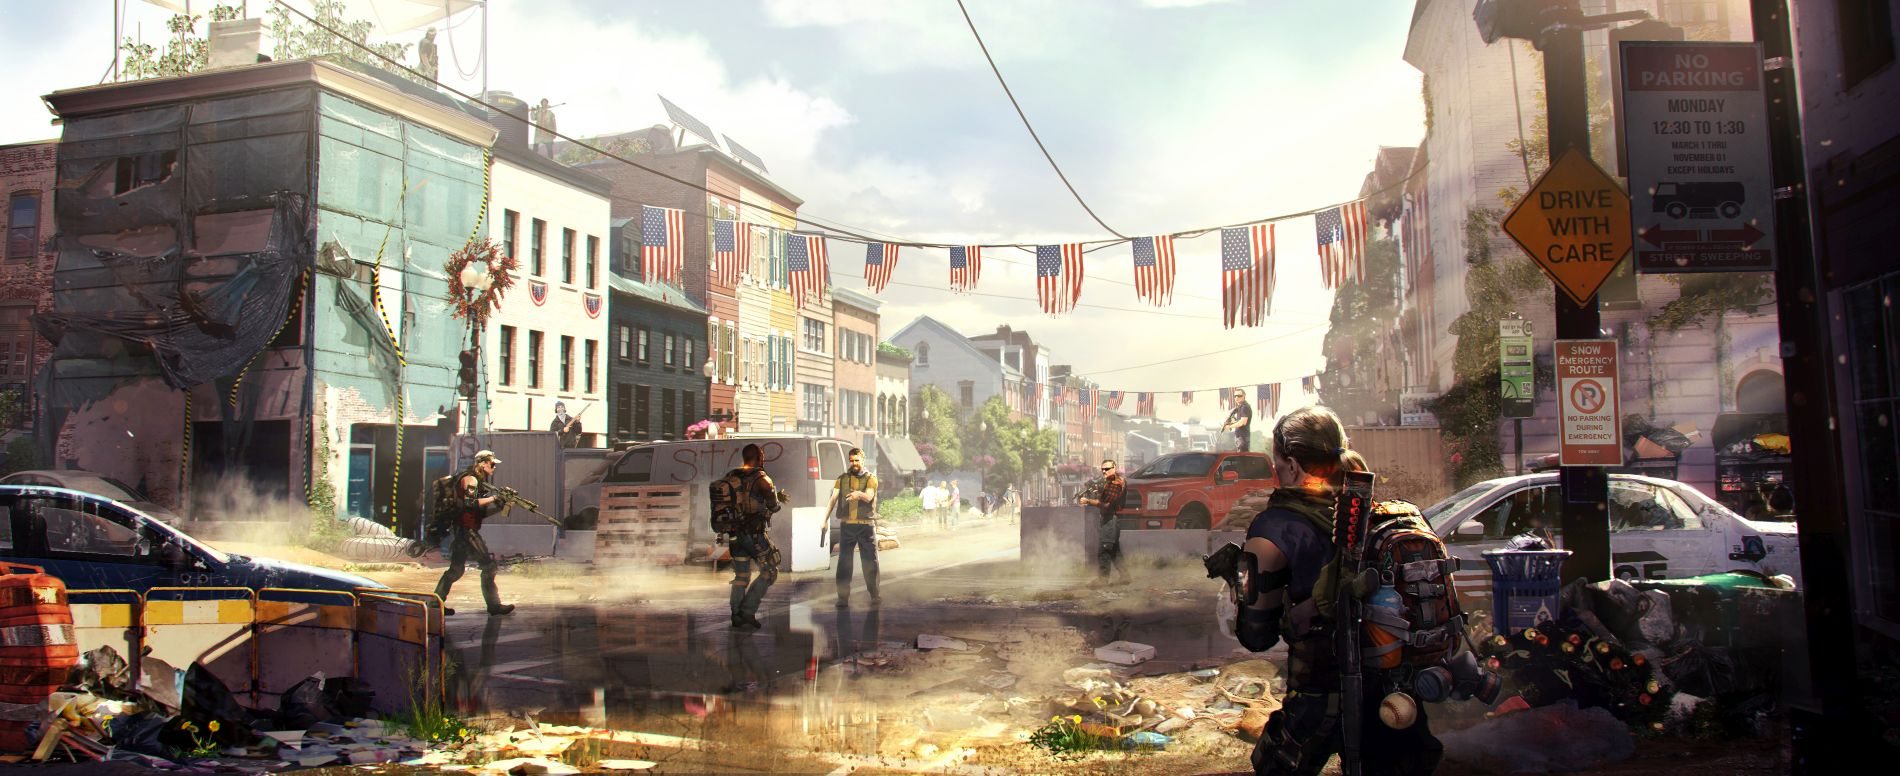 Cute Raccoon Wallpaper The Division 2 Theater Comms Location Guide Vg247